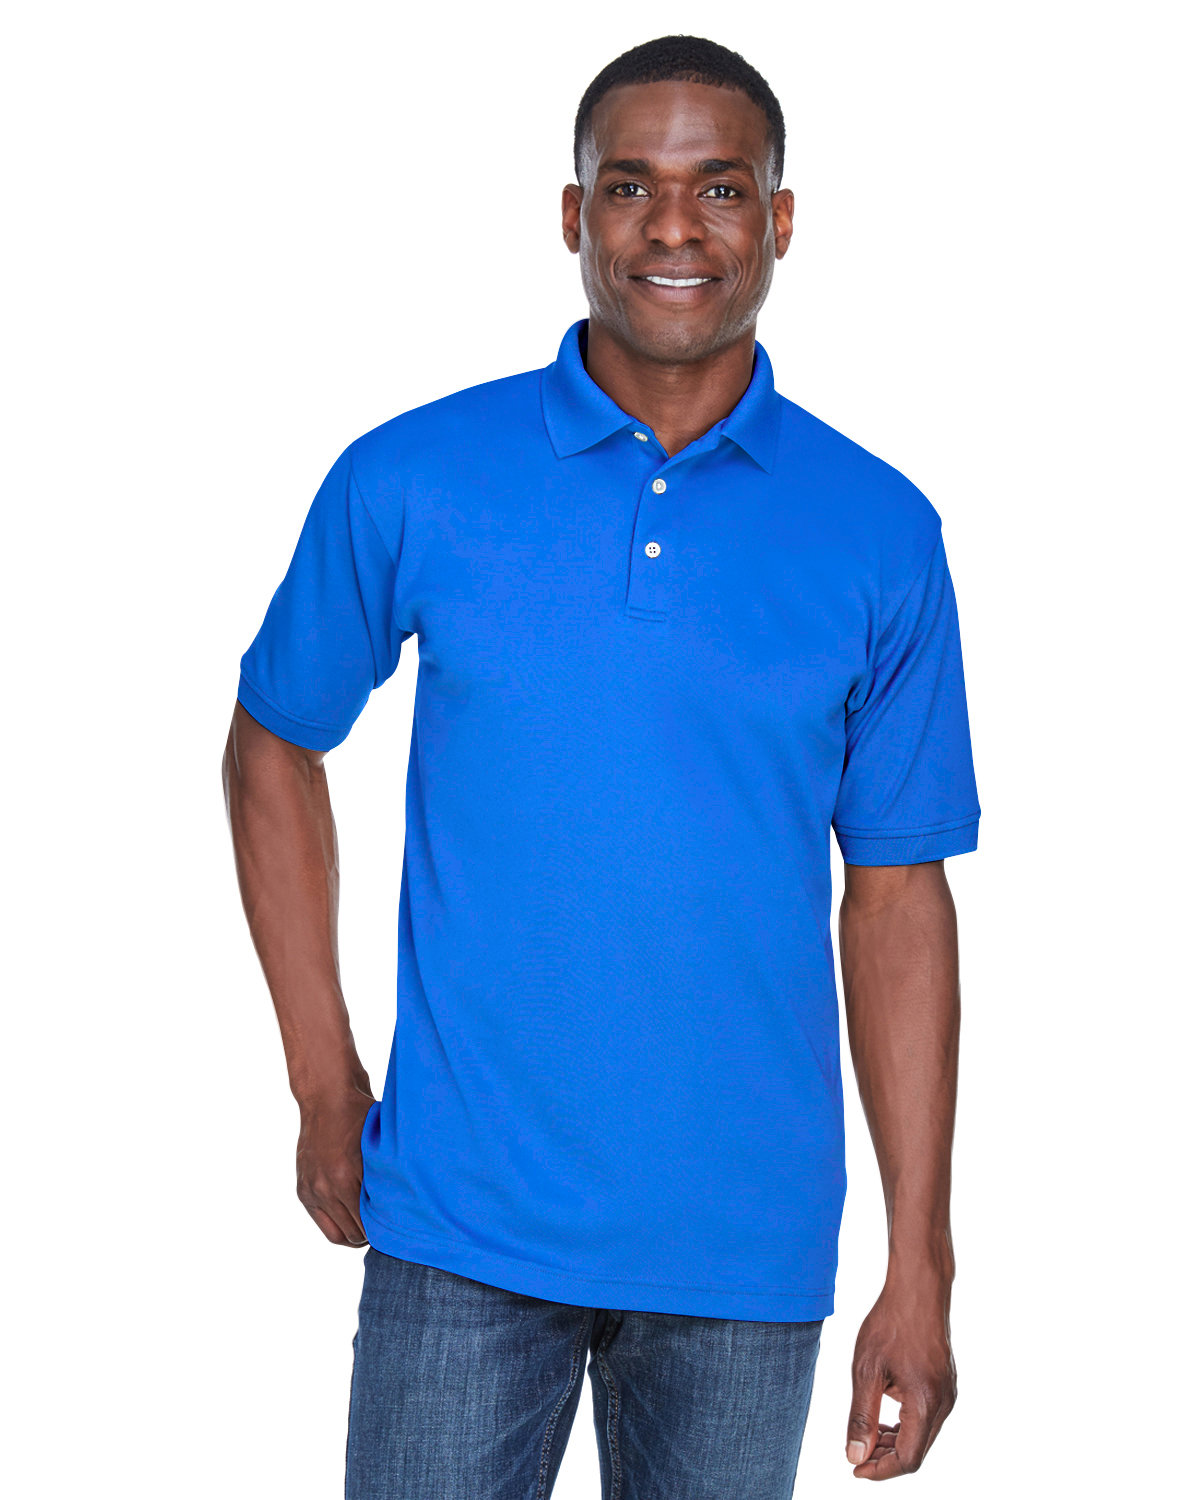 UltraClub Men's PlatinumPerformance Piqué Polo with TempControl Technology ROYAL